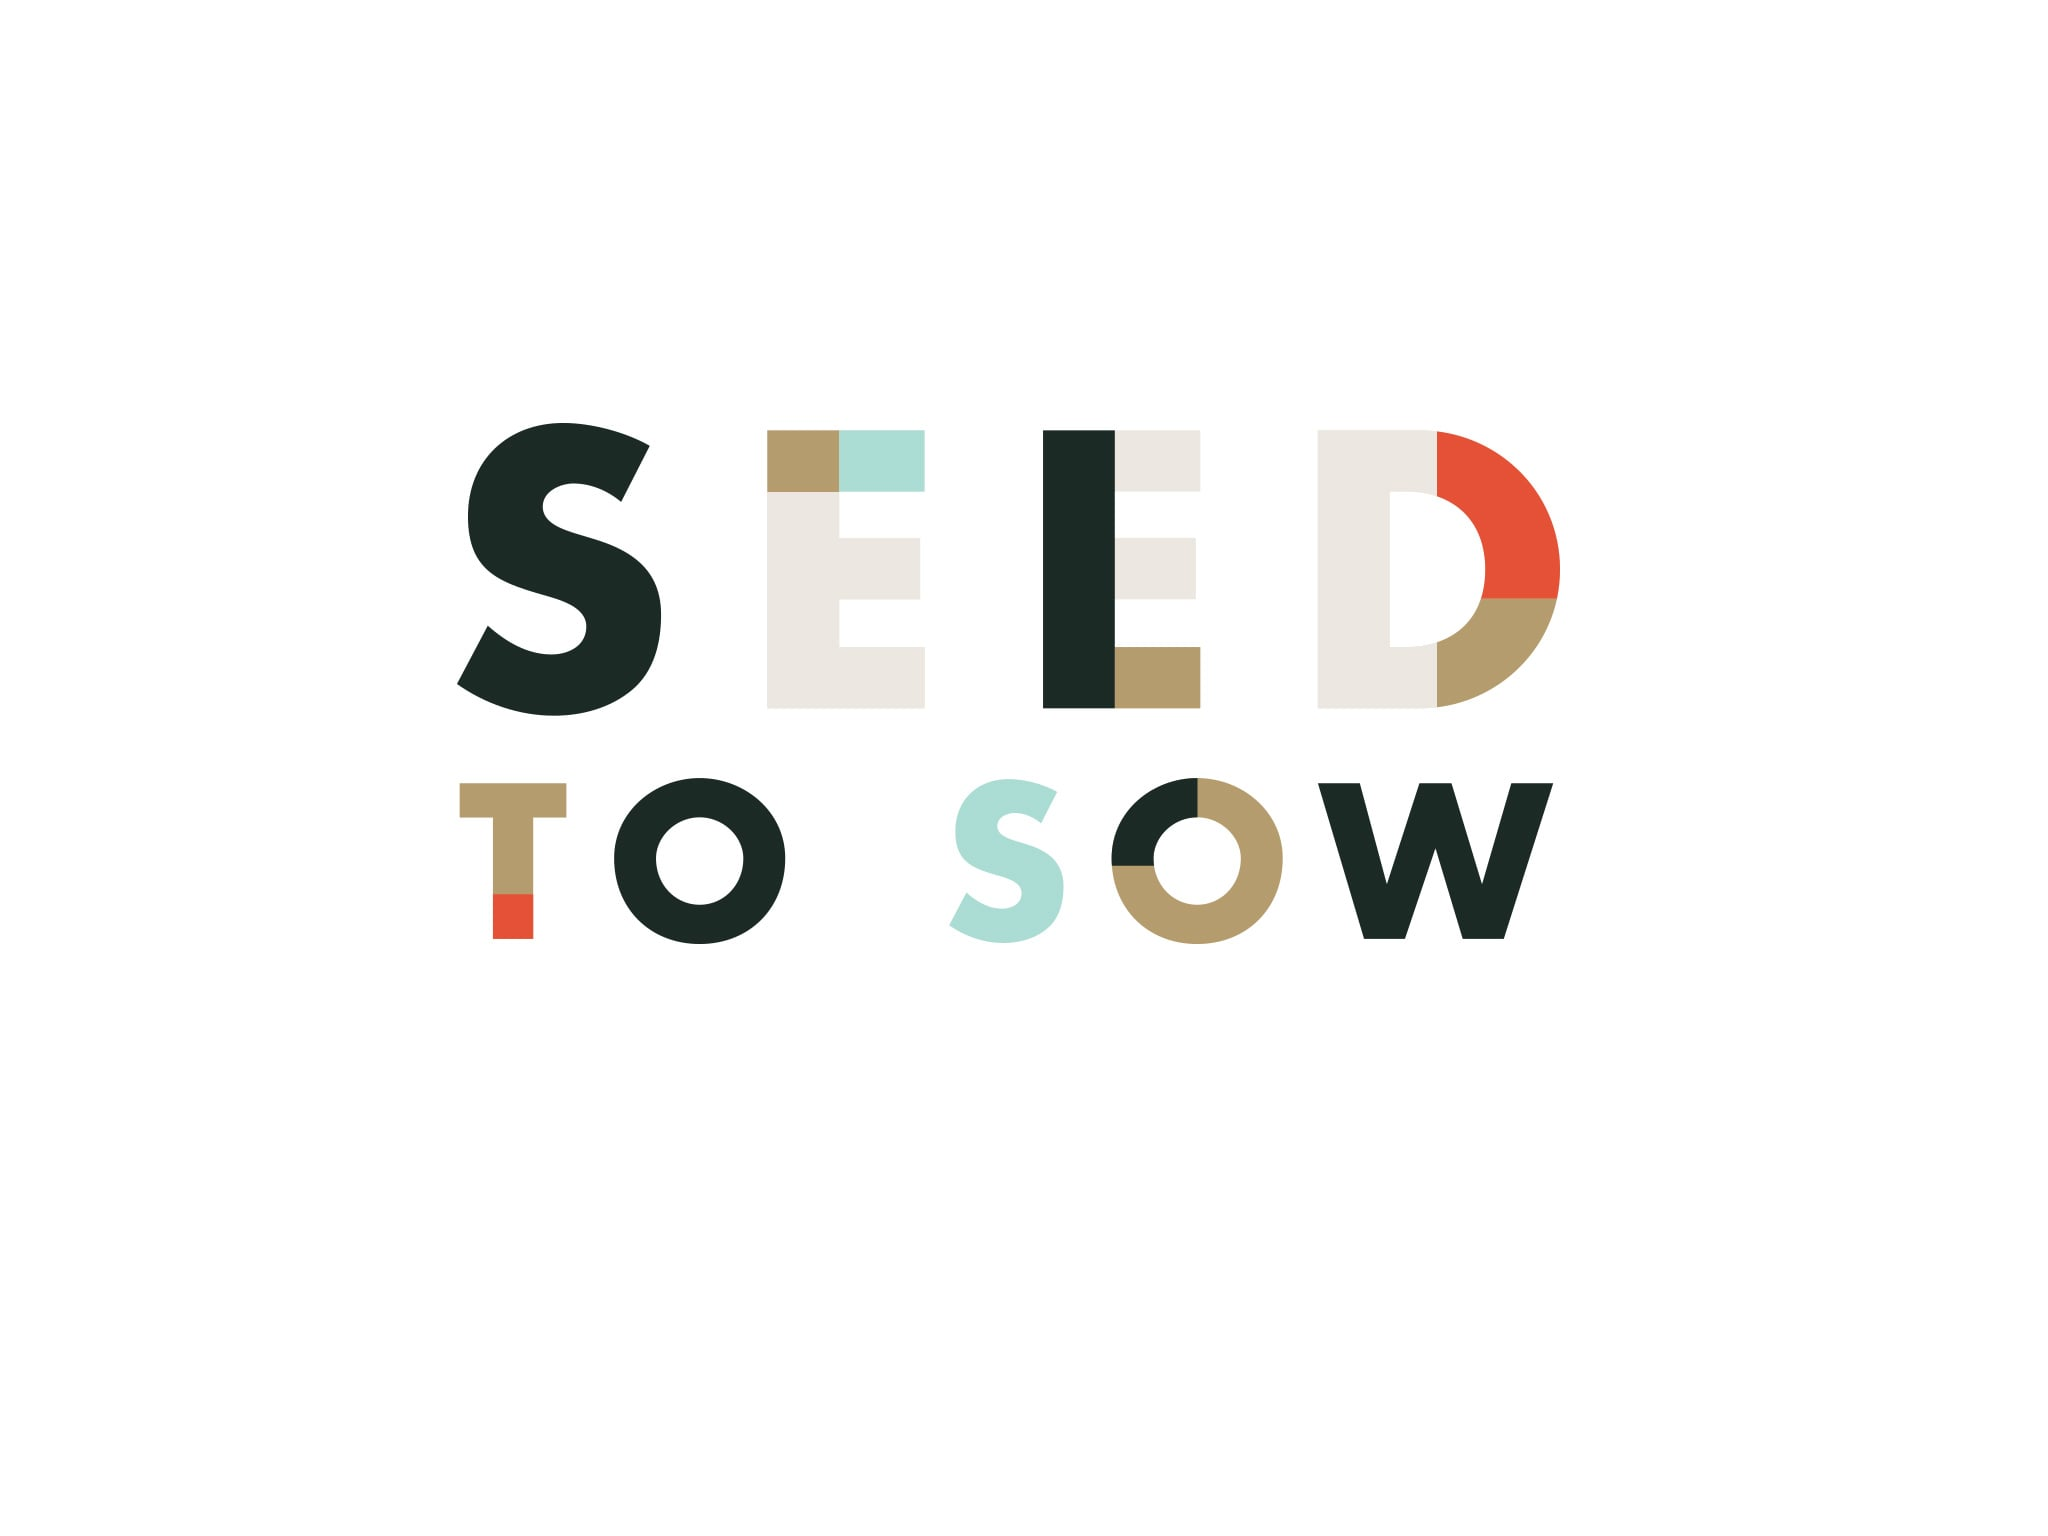 Seed+to+Sow.jpg